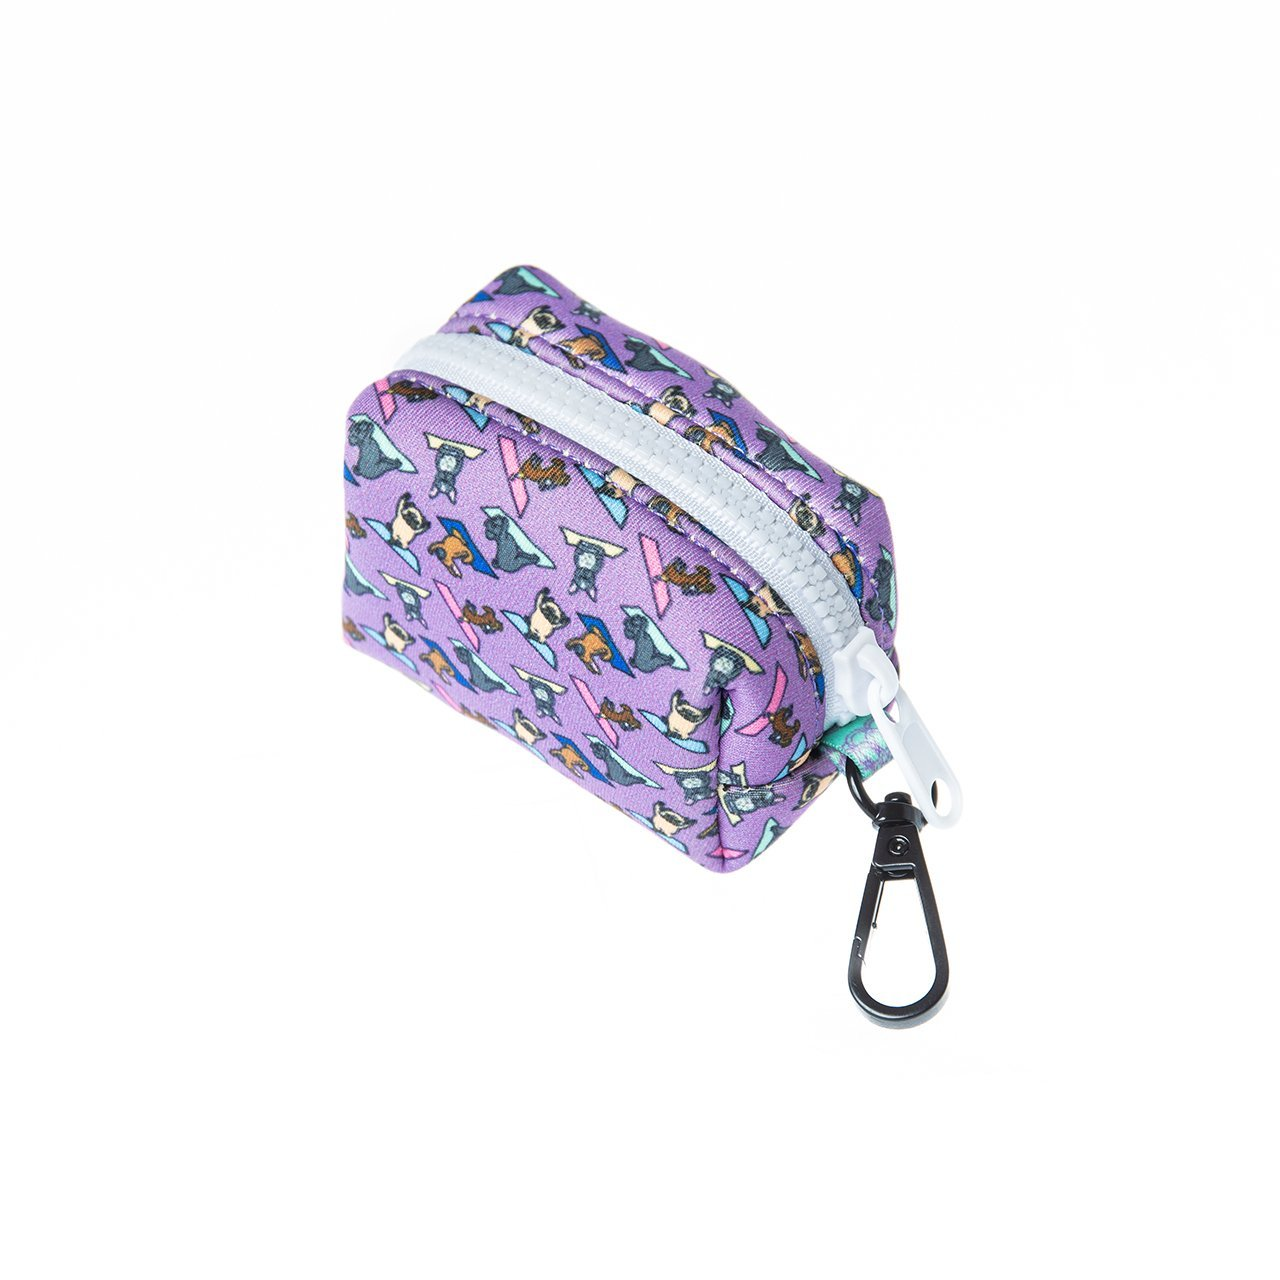 Yoga Poop Bag Holder - Beast & Buckle